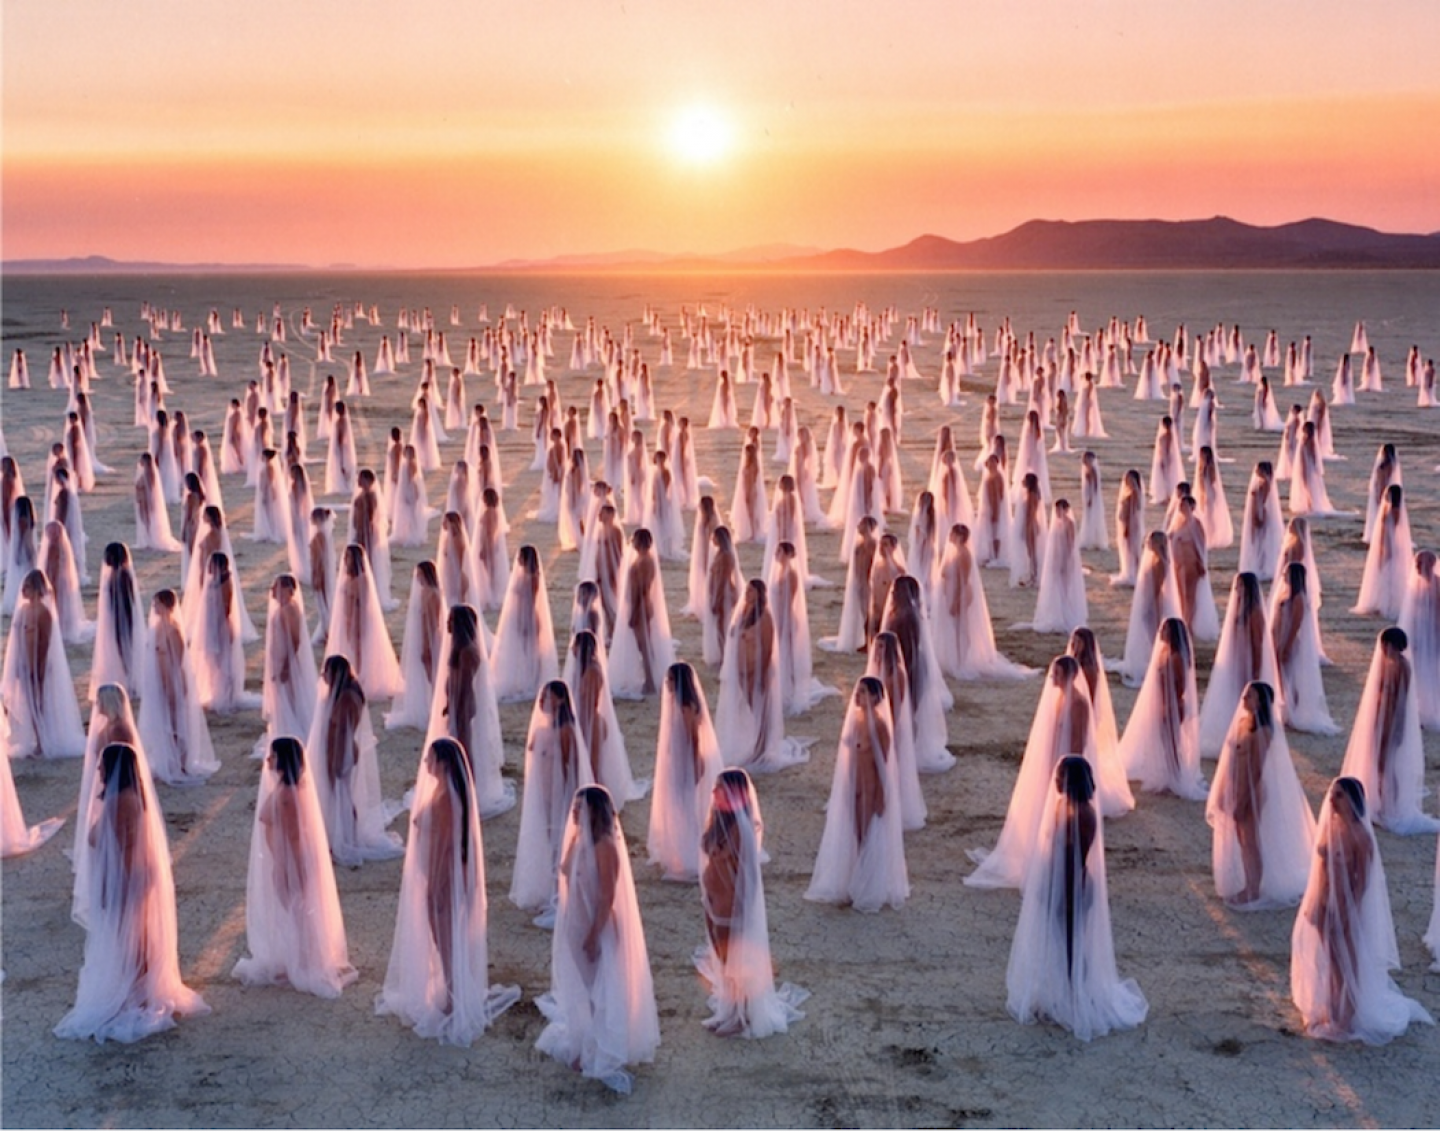 art_spencertunick_adornment_01